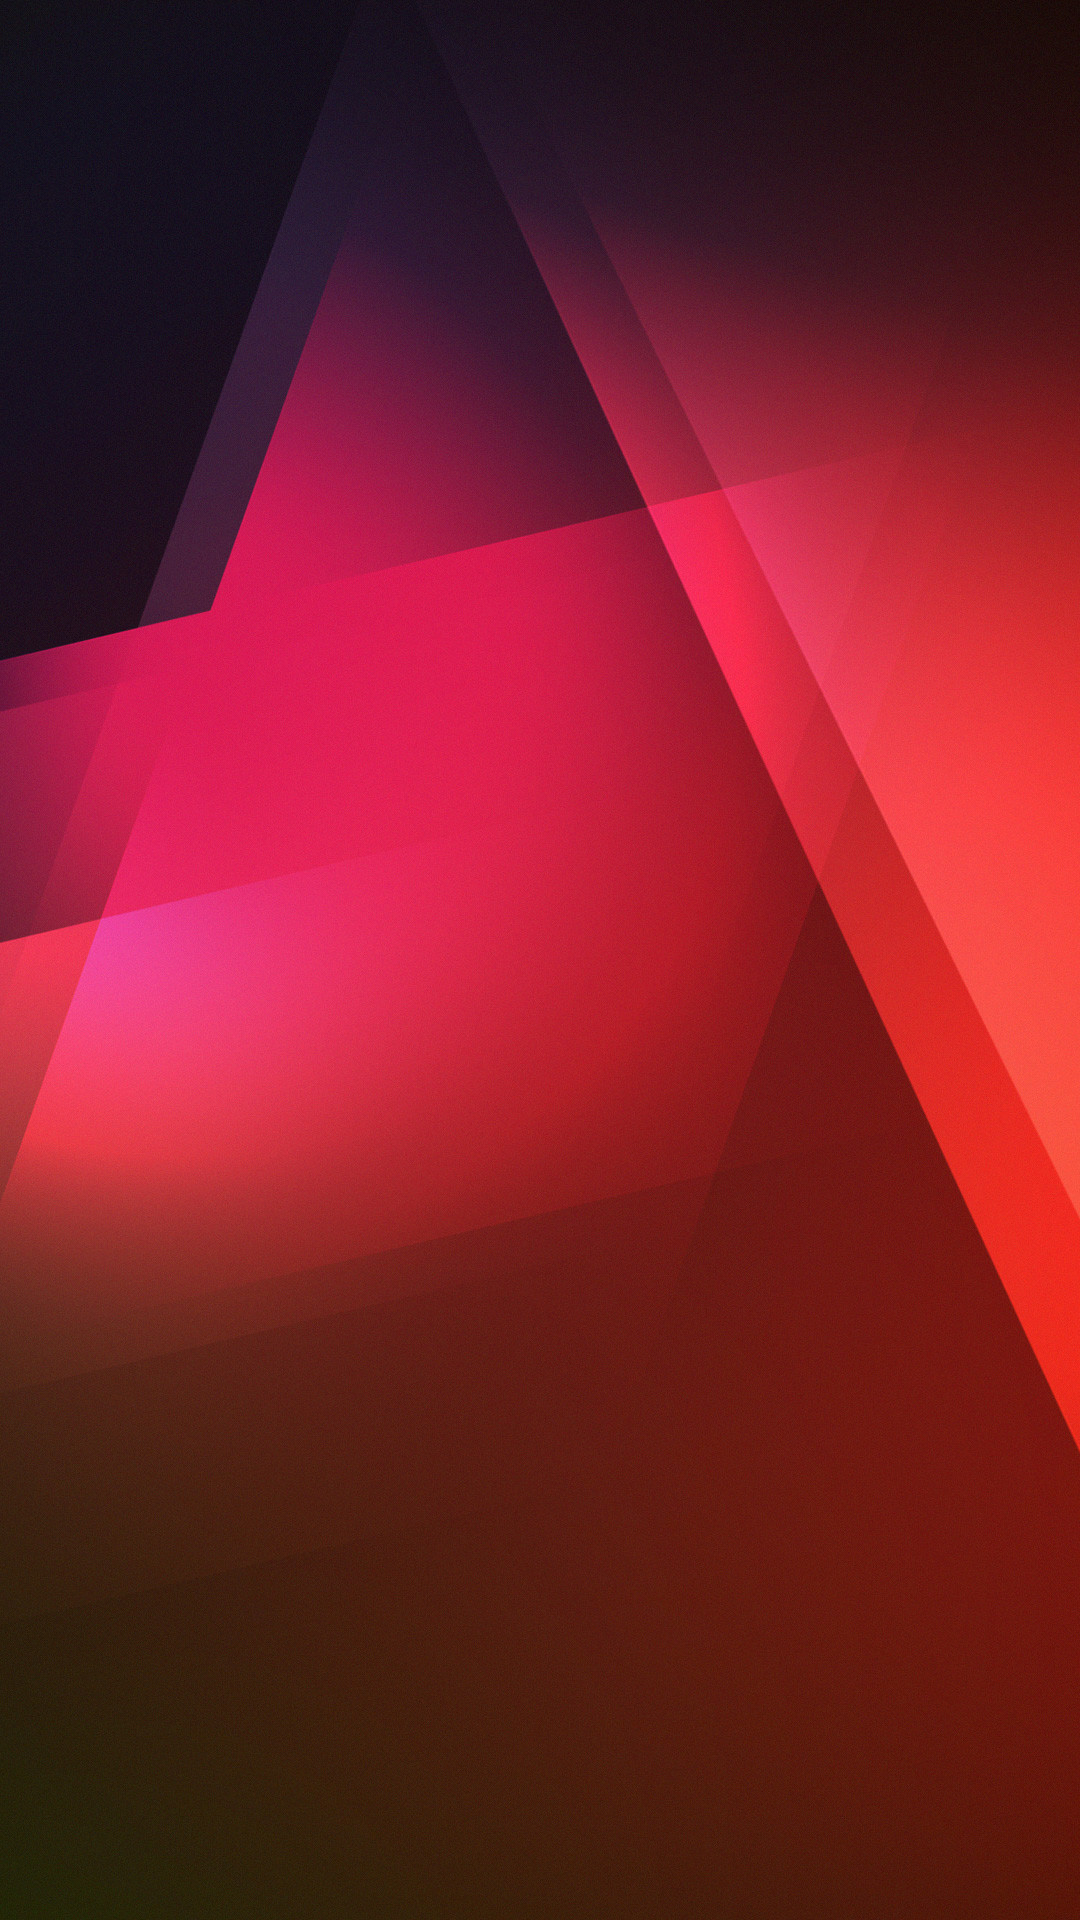 Red Triangles Gradient Shadows iPhone 6 Plus HD Wallpaper …